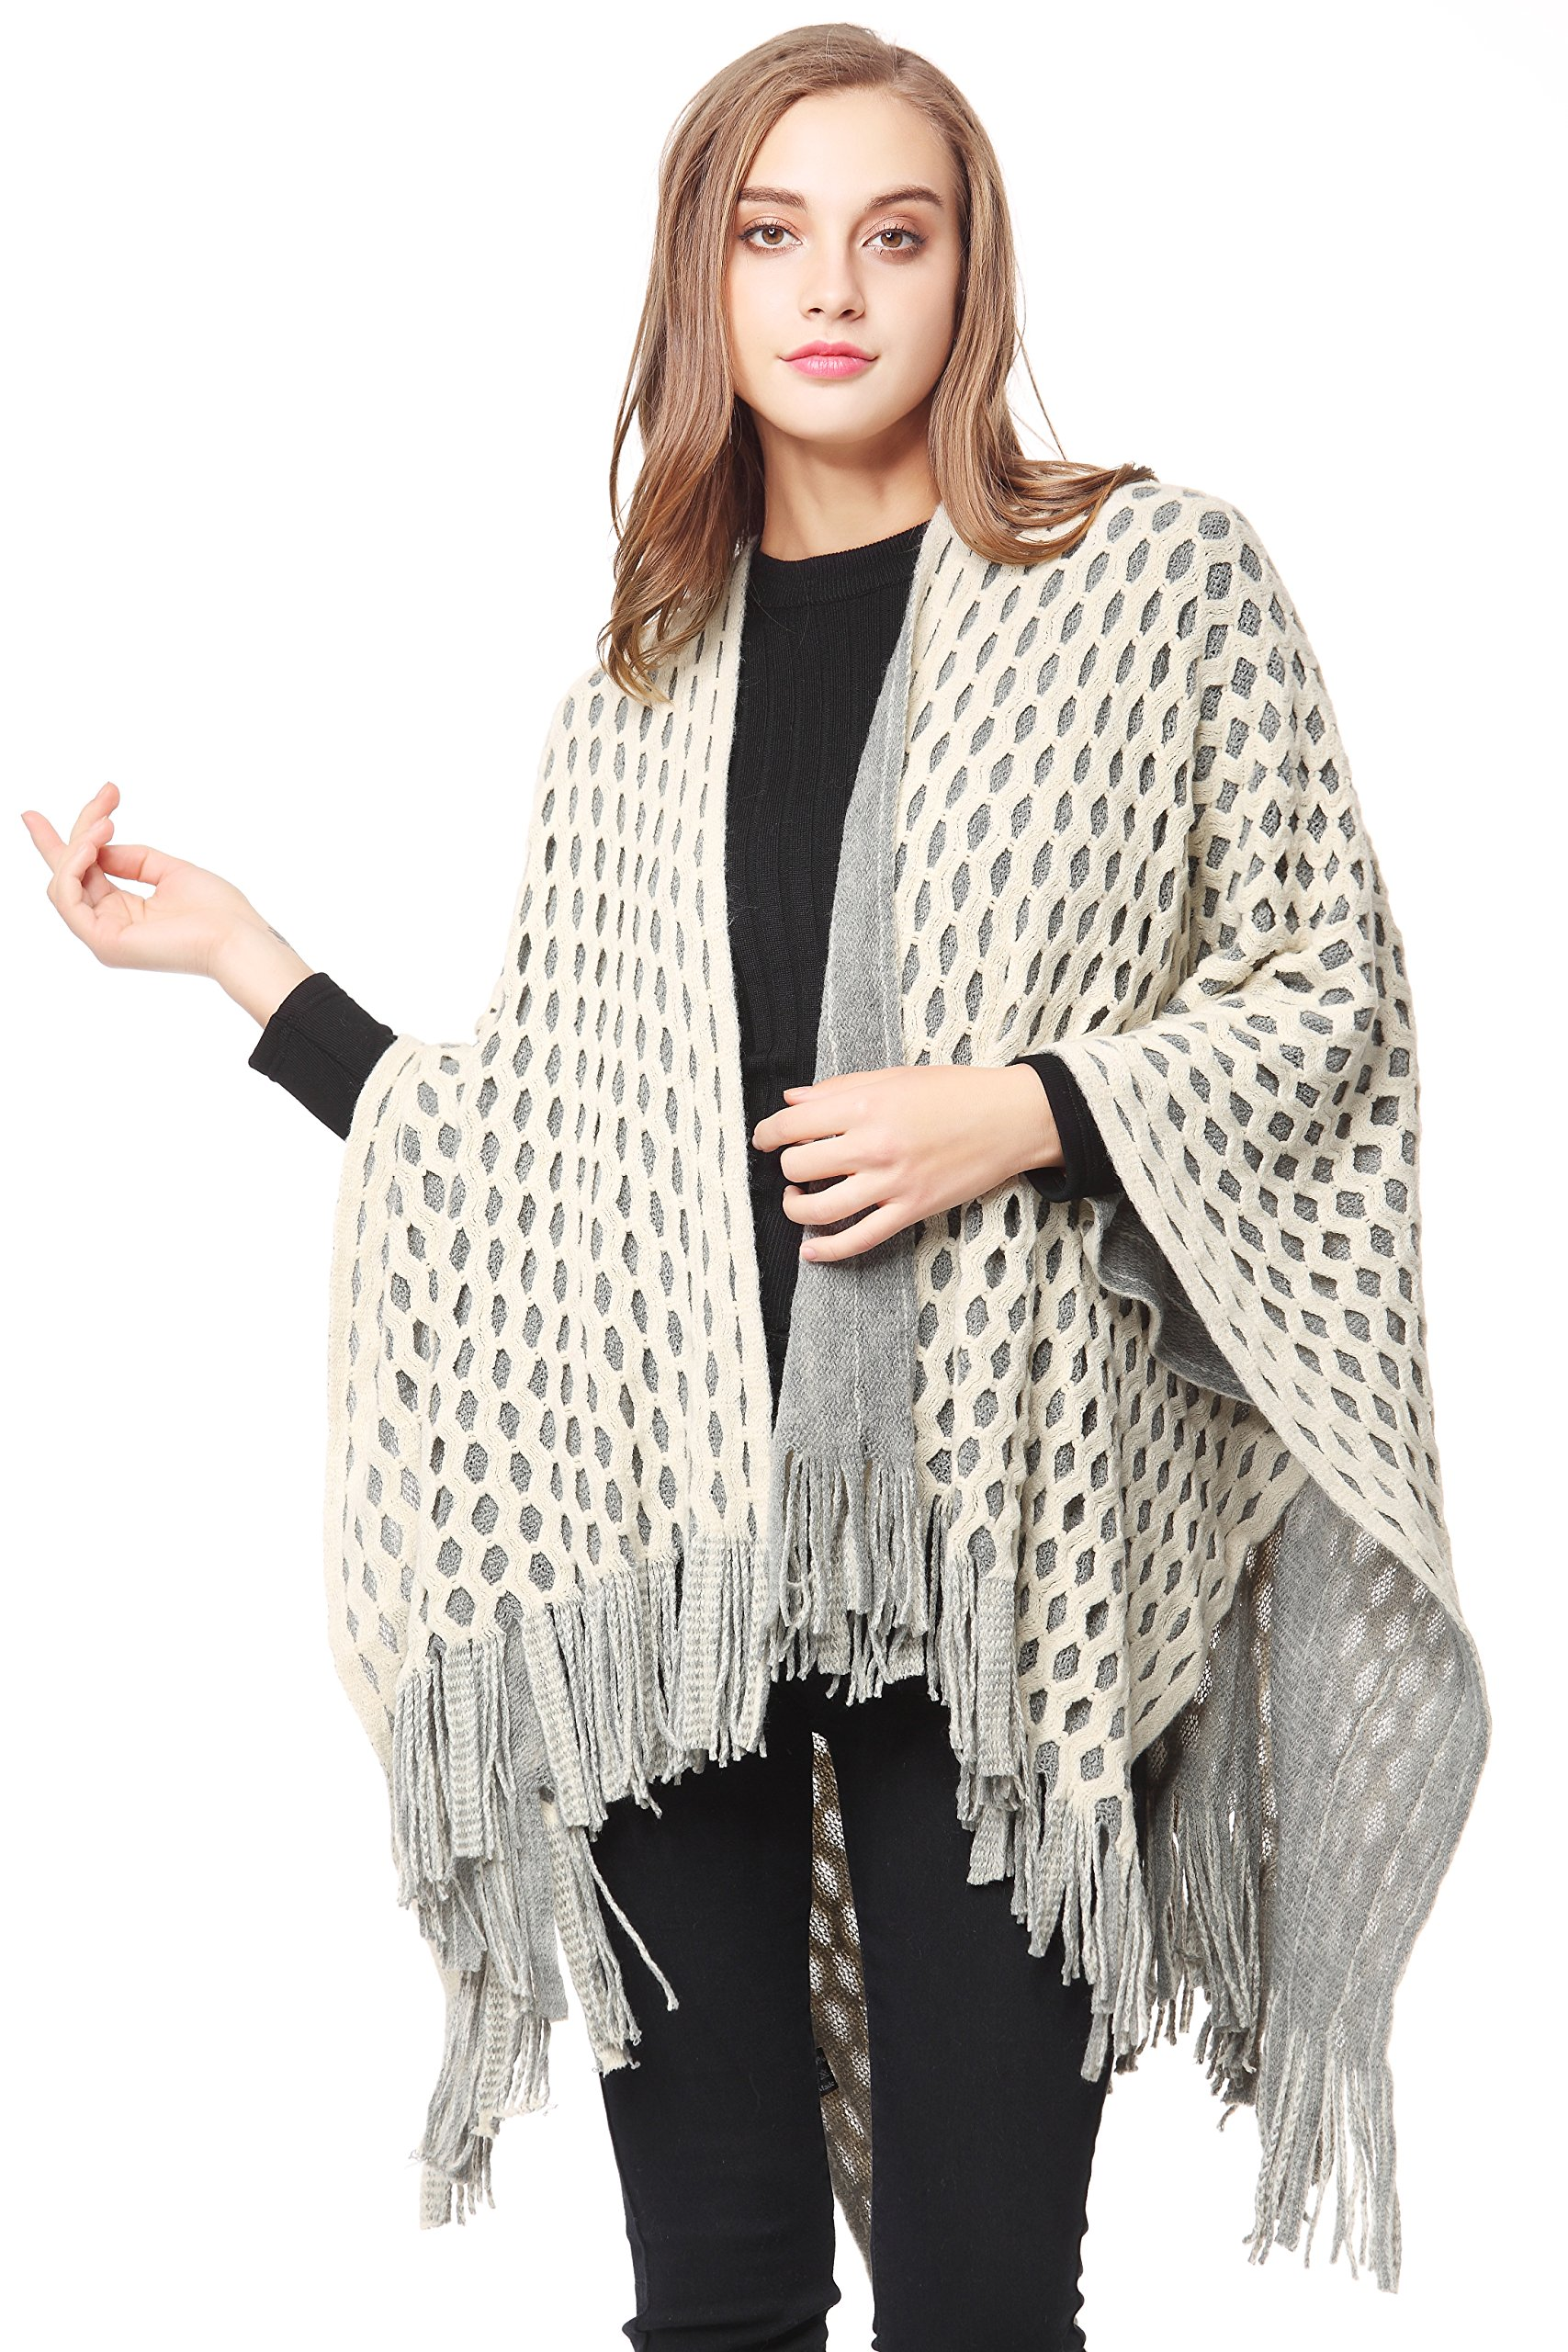 ZLYC Women's Checked Knitted Winter Netted Fringe Poncho Shawl Travel Wrap Cape (Creamy White)